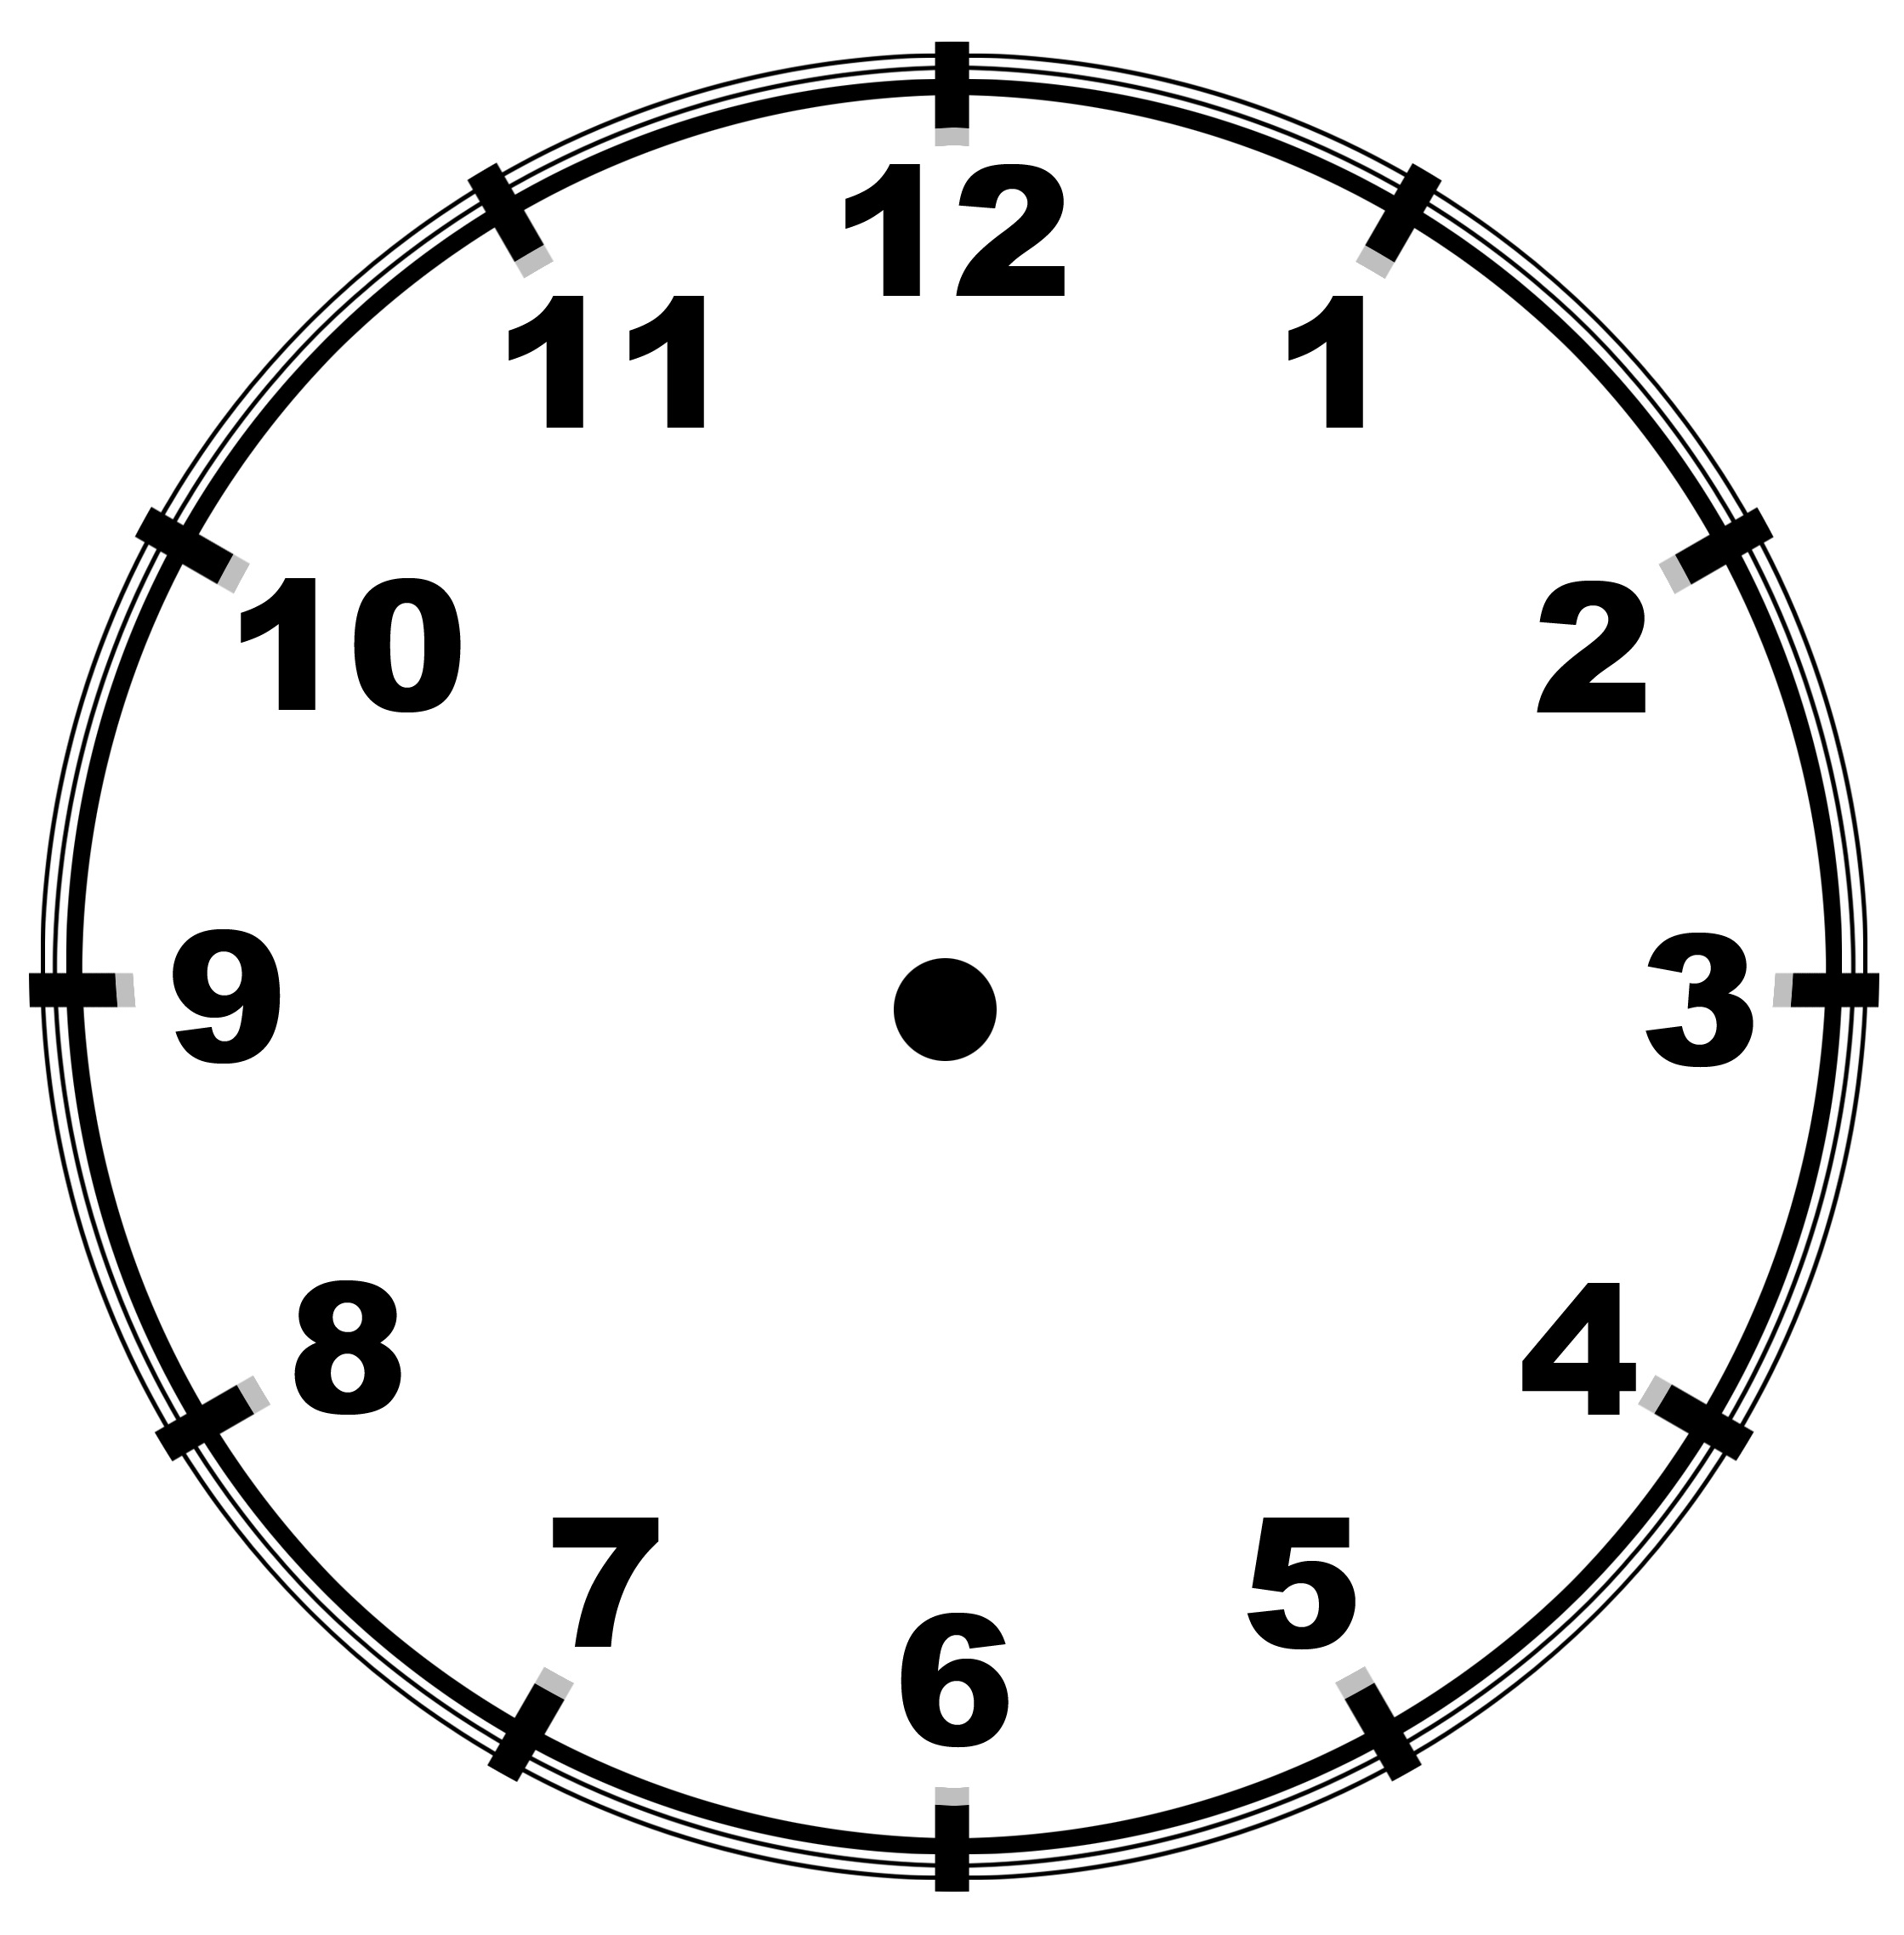 Pictures Of Clocks For Teaching Time Images